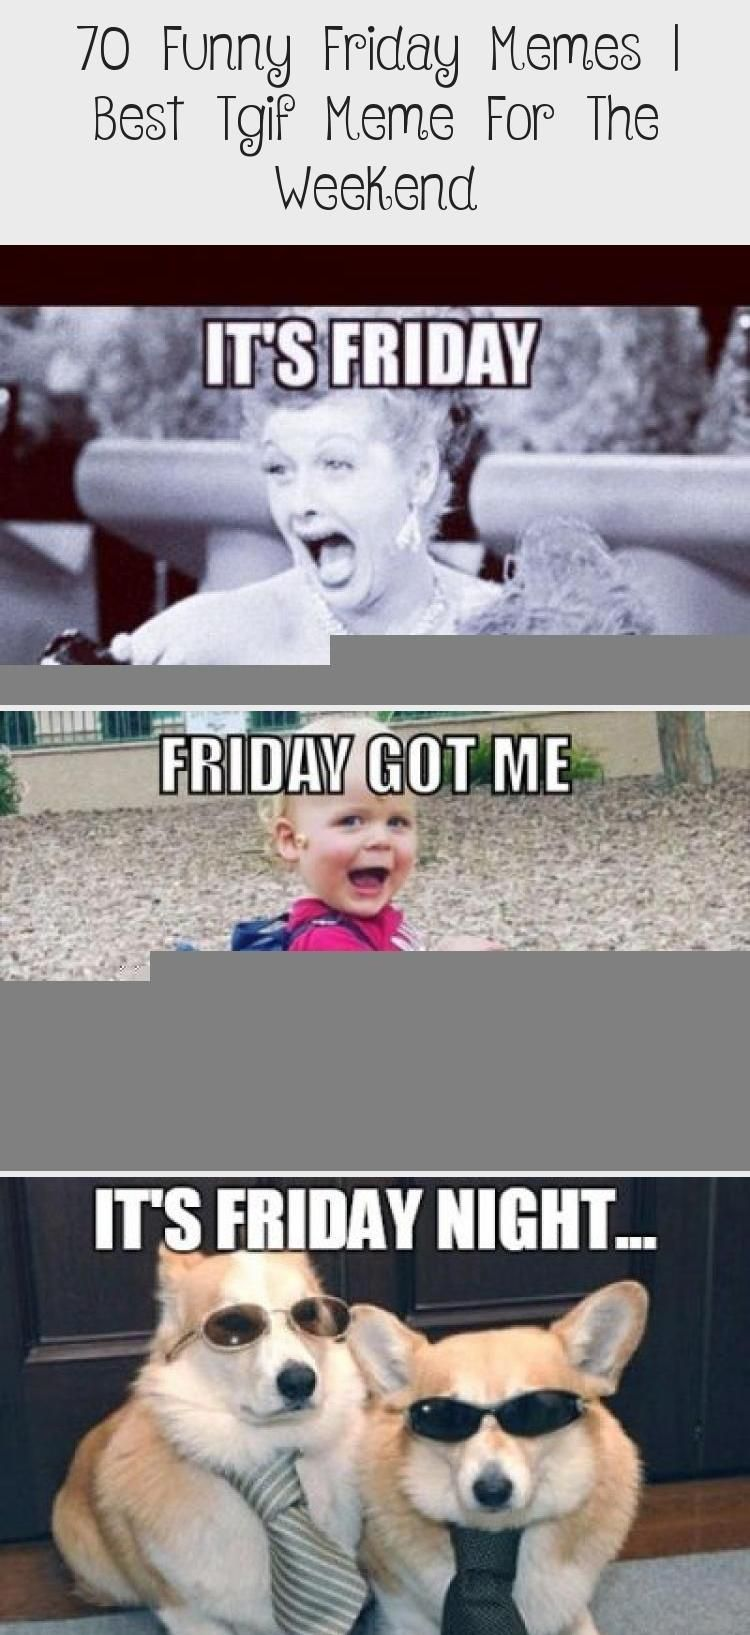 70 Funny Friday Memes Best Tgif Meme For The Weekend